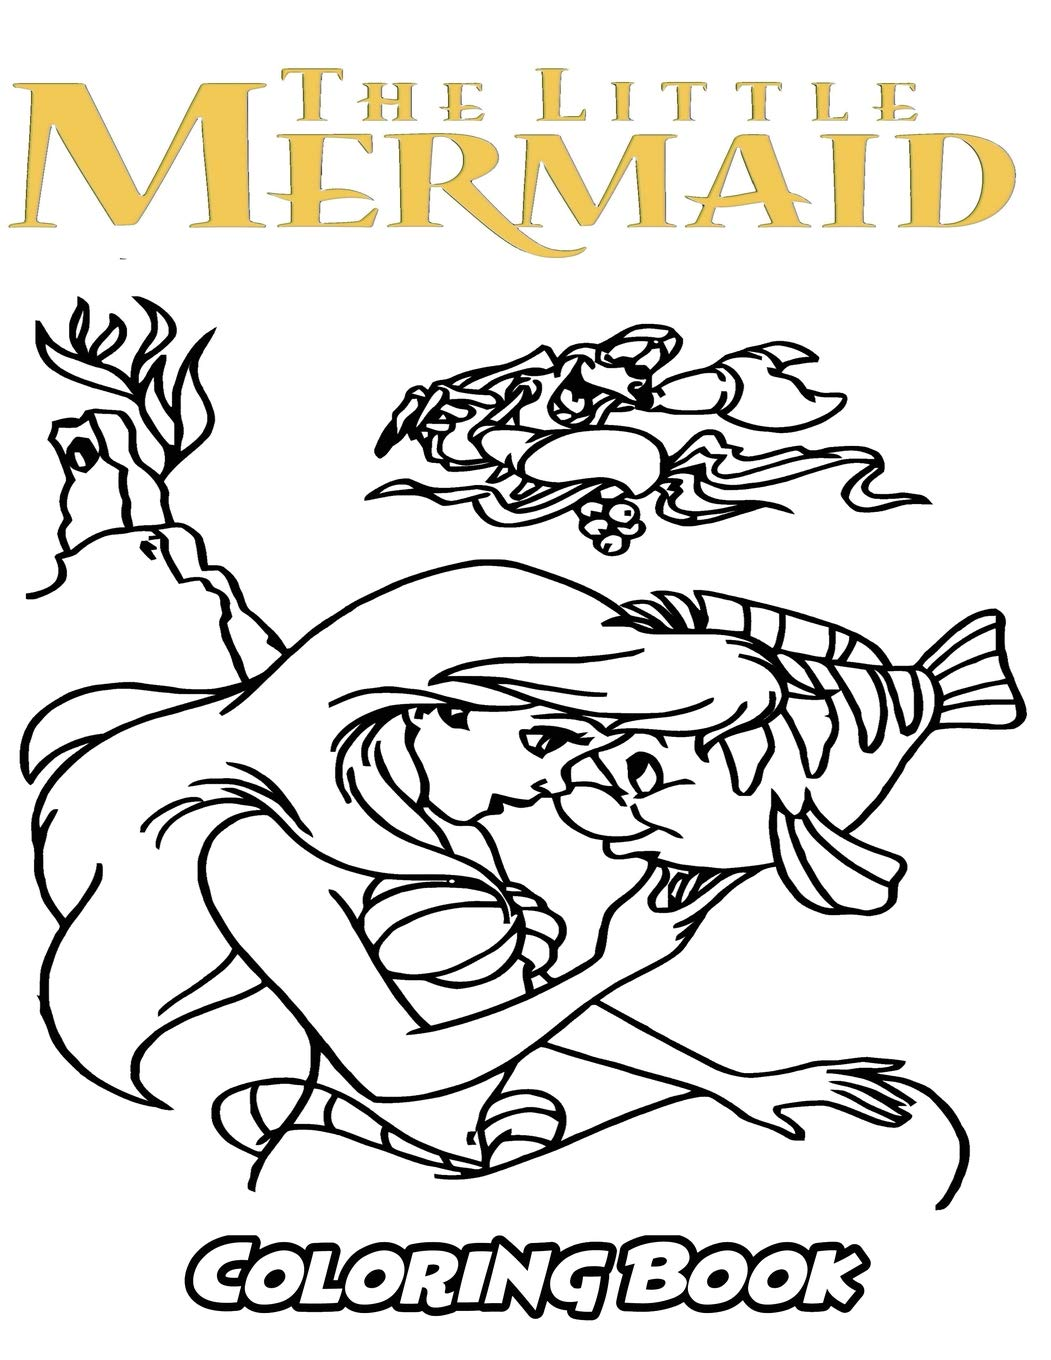 Amazon.com: The Little Mermaid Coloring Book: Coloring Book for Kids ...